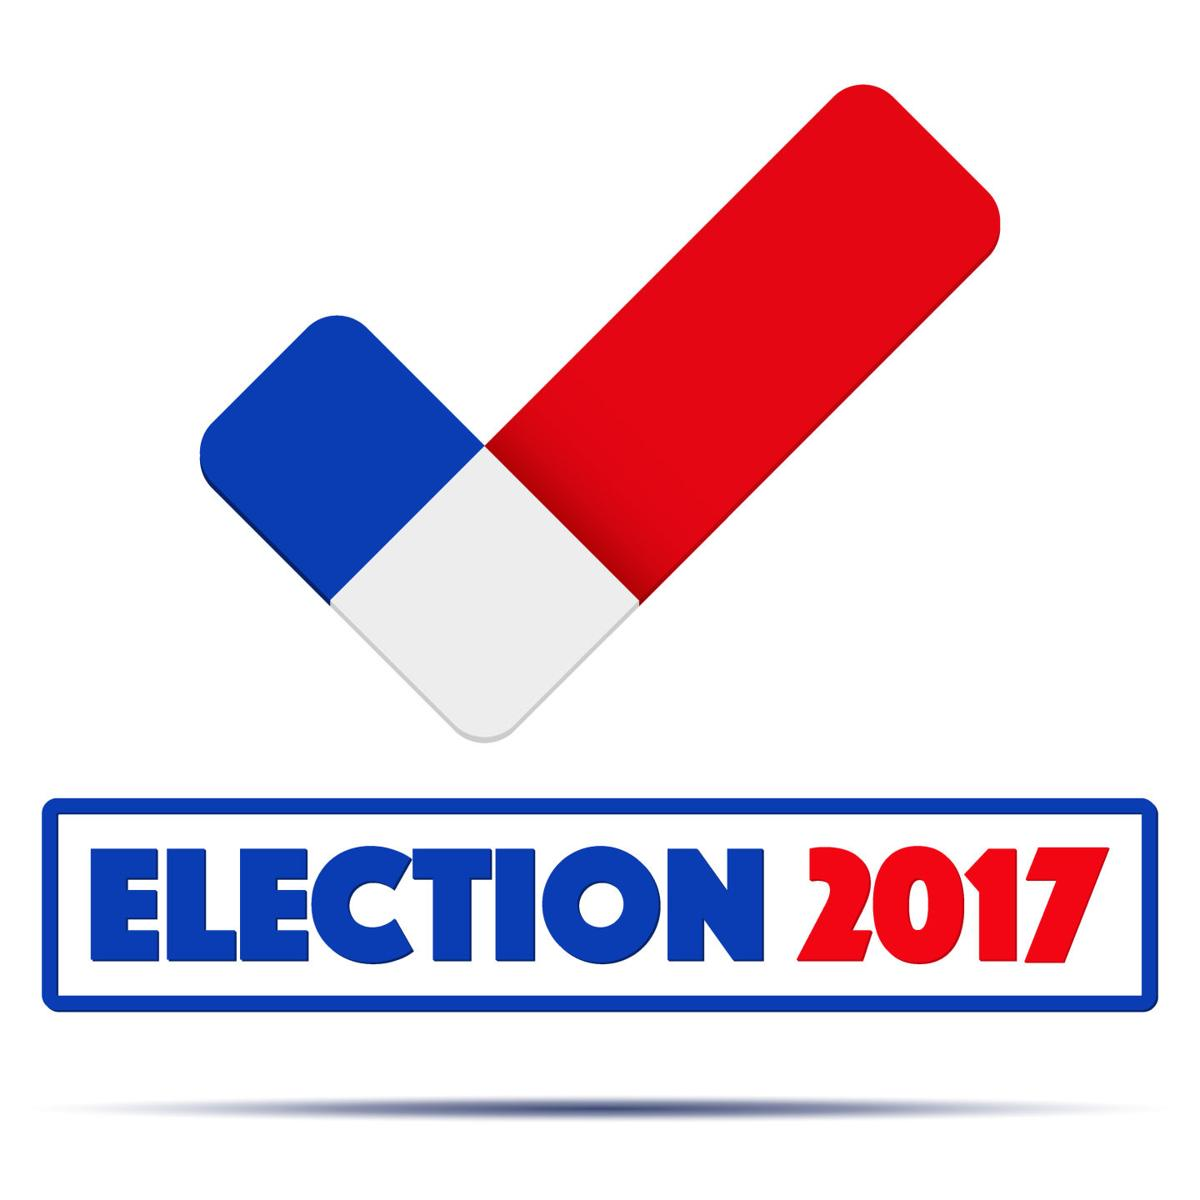 Study one vote can turn an election in north carolina state symbol of election 2017 in france check mark symbol in the form of french flag politics illustration isolated on white background buycottarizona